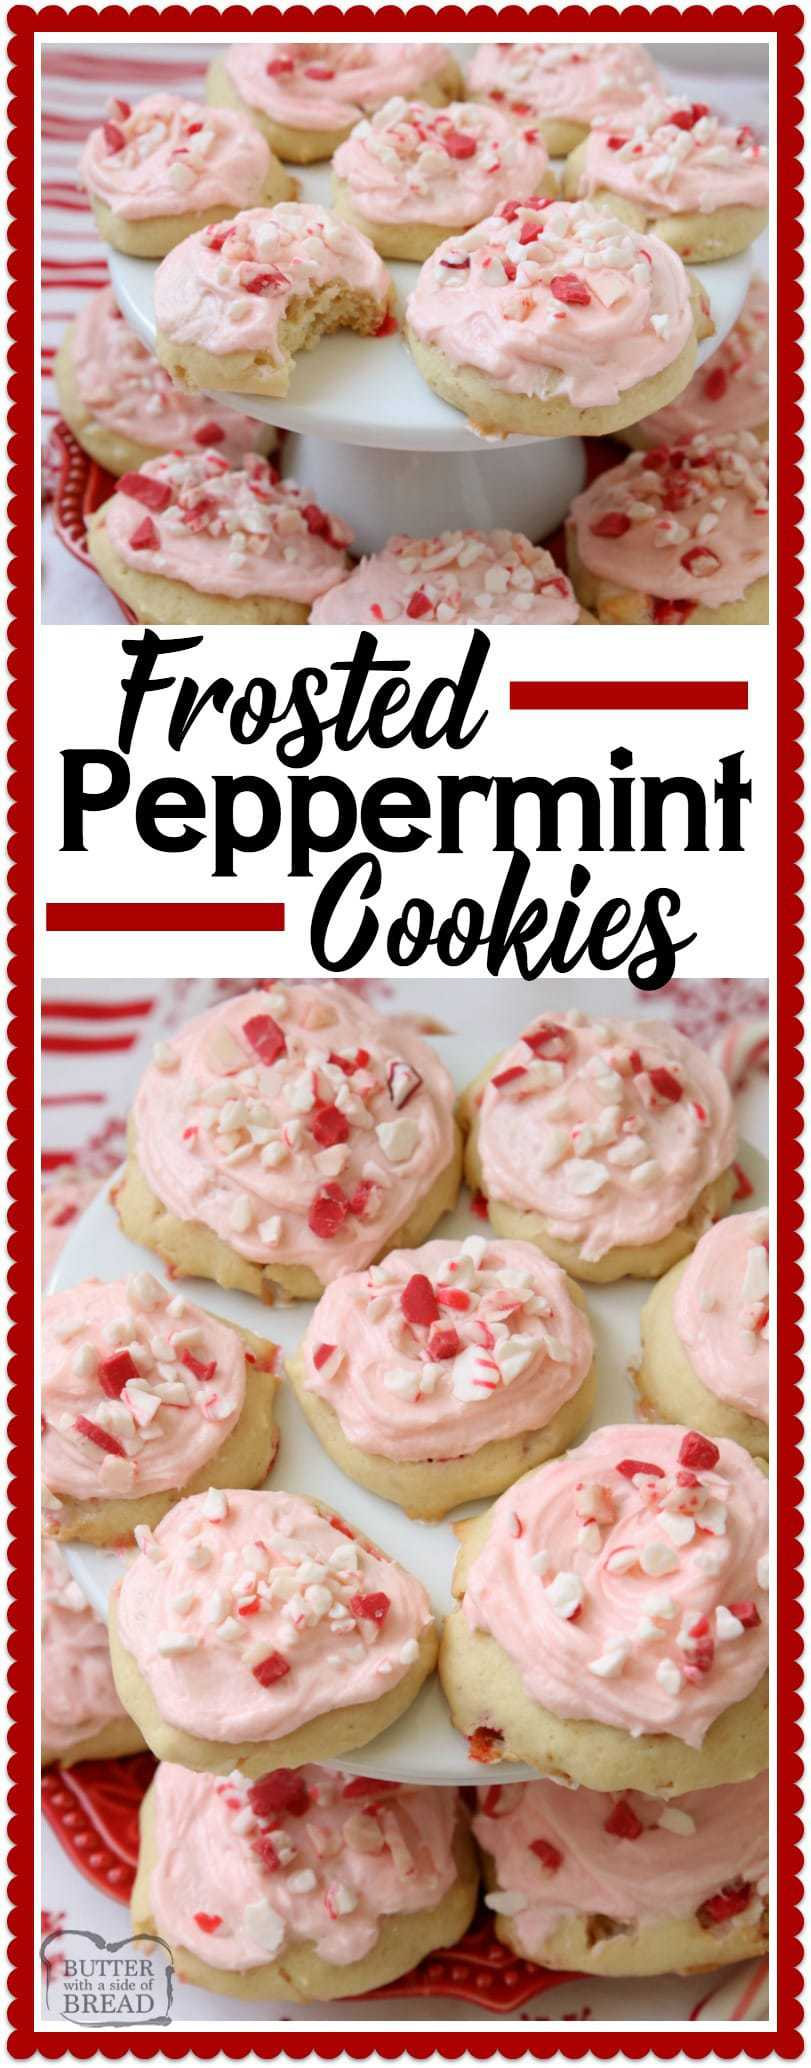 Frosted Peppermint Cookies are soft, pillowy cookies baked with peppermint candy and topped with peppermint vanilla buttercream and candy cane pieces. #Christmas #Cookie #recipe made with #peppermint perfect for the #holidays from Butter With A Side of Bread